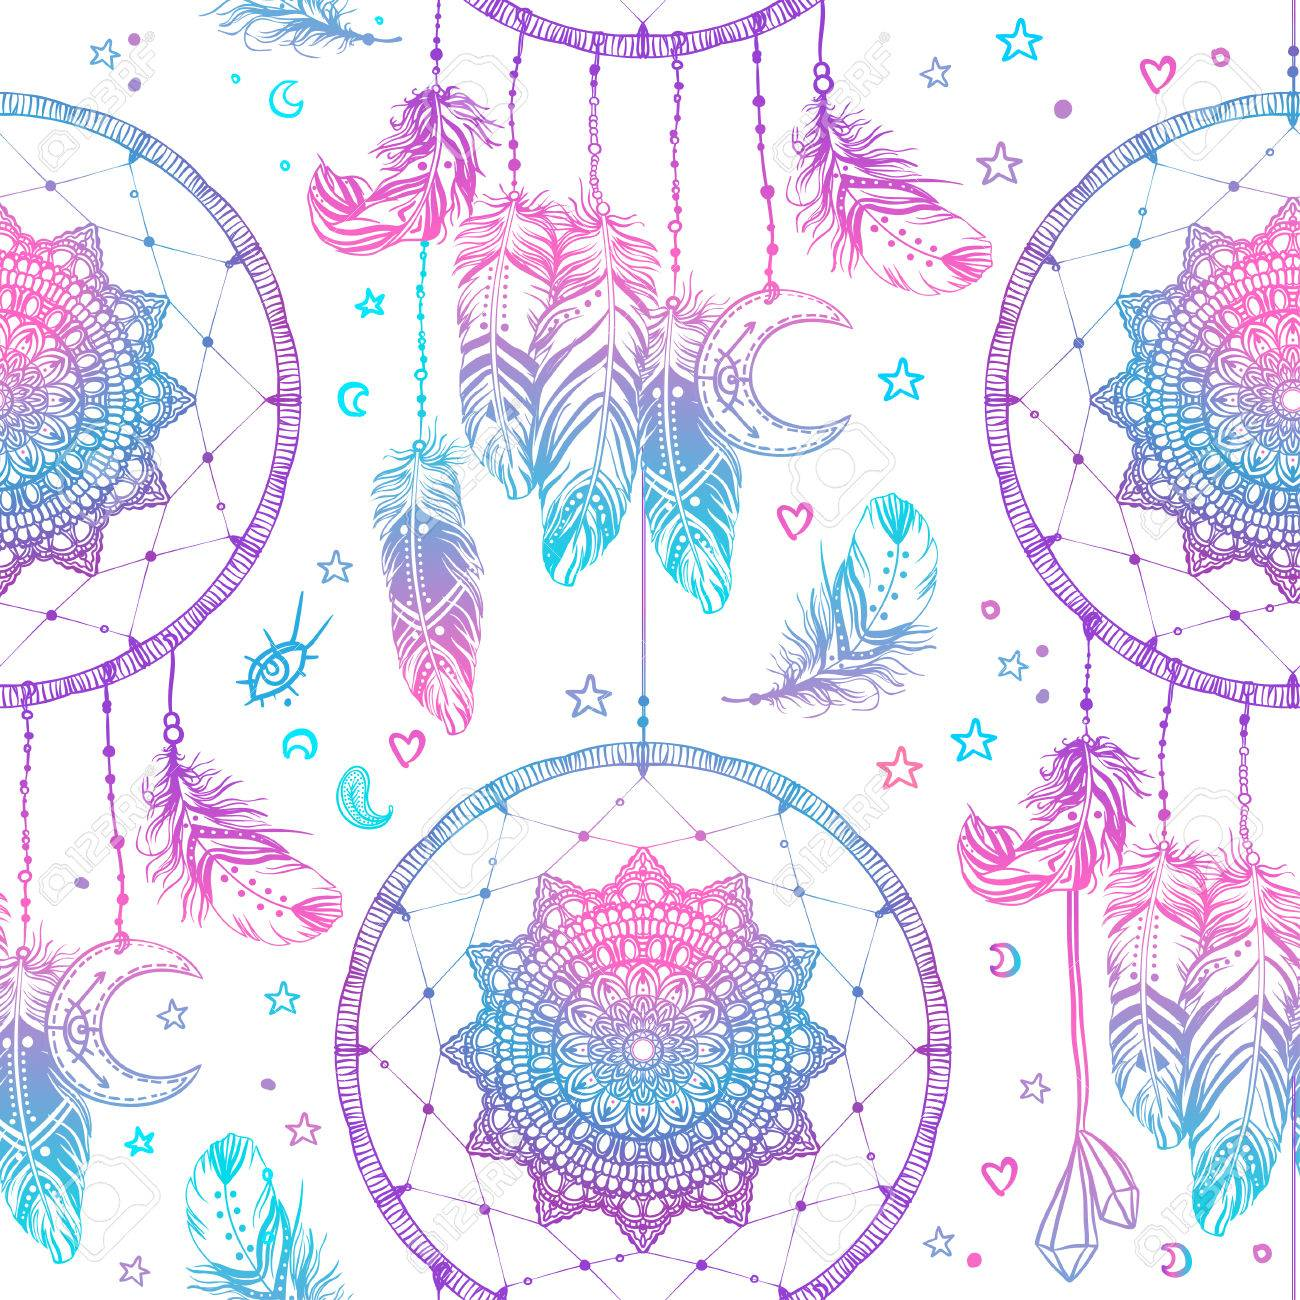 Hand drawn Native American Indian talisman dreamcatcher with feathers and moon. Seamless pattern. Vector hipster illustration. Ethnic design, boho chic, tribal symbol. Good fabric, textile, walpaper - 79054371